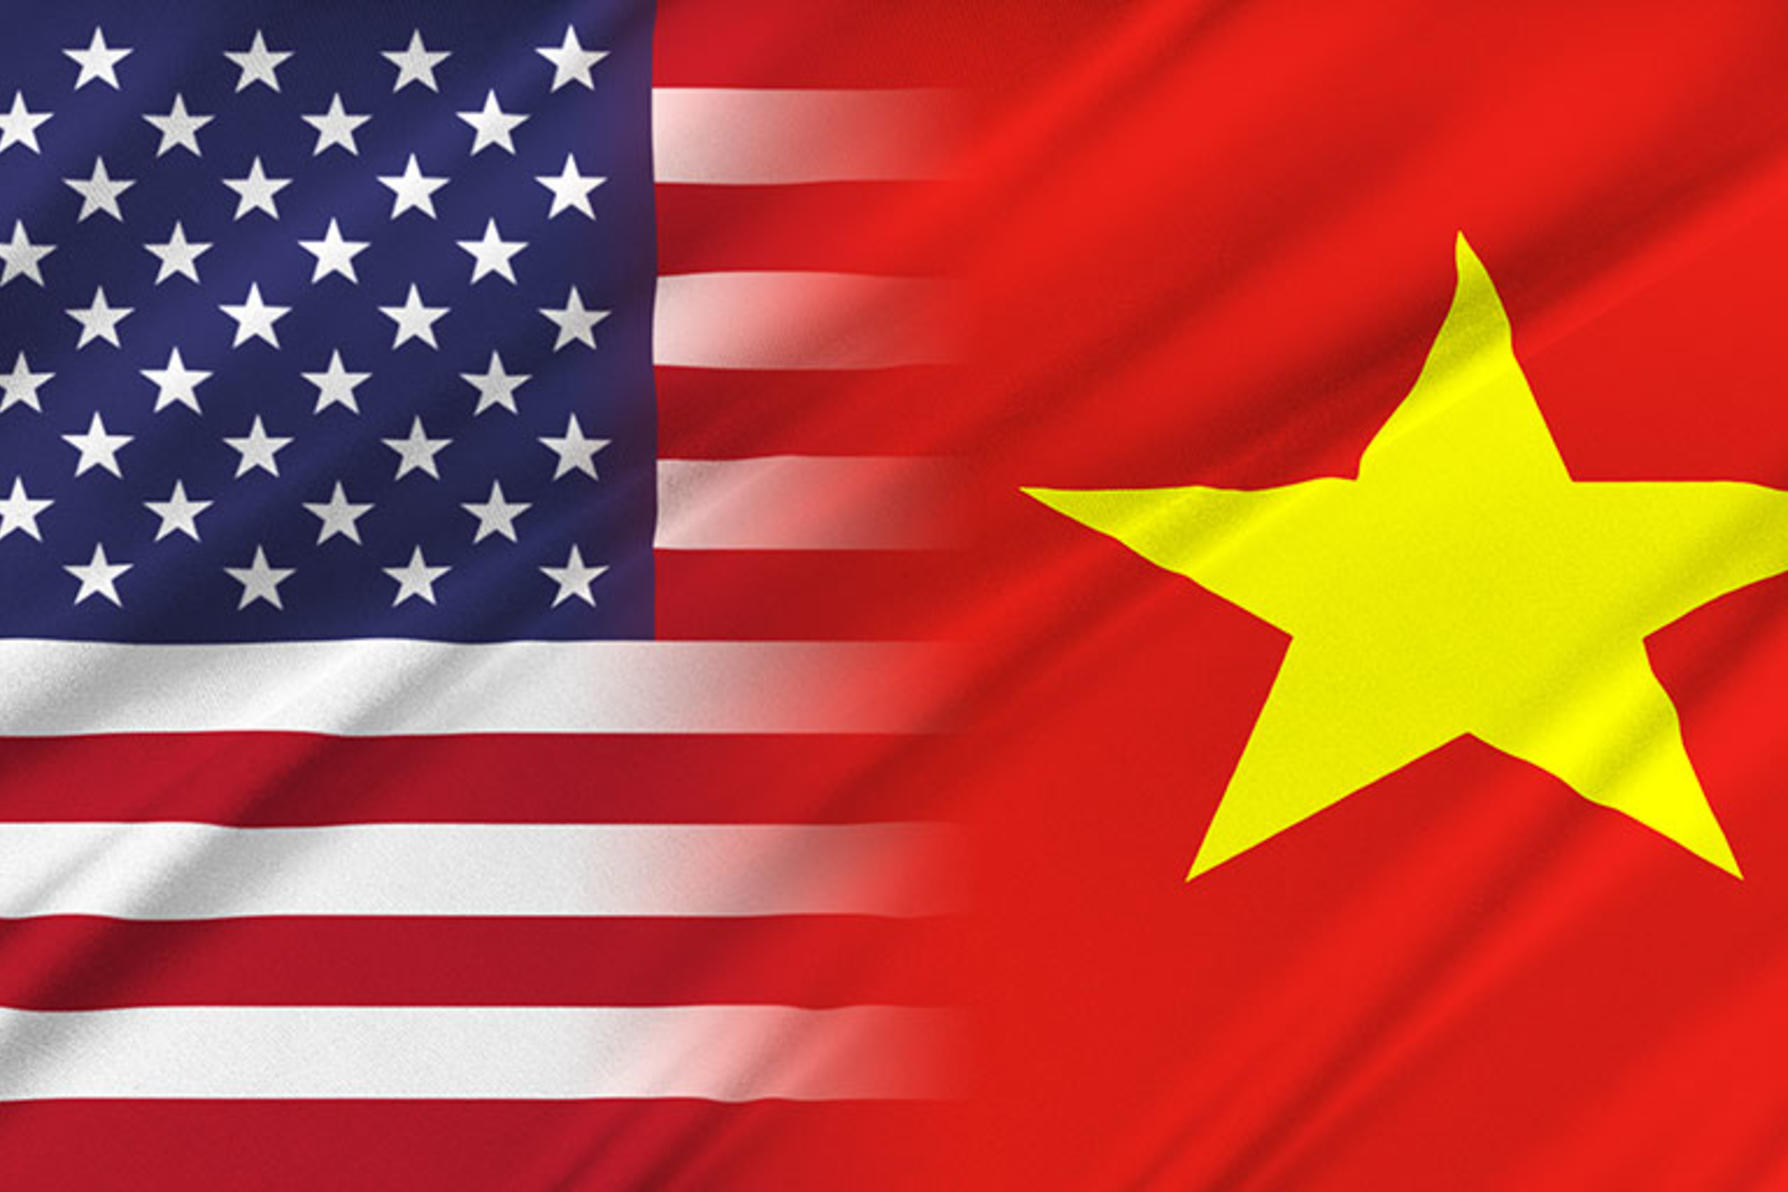 U.S. and Vietnam Flags